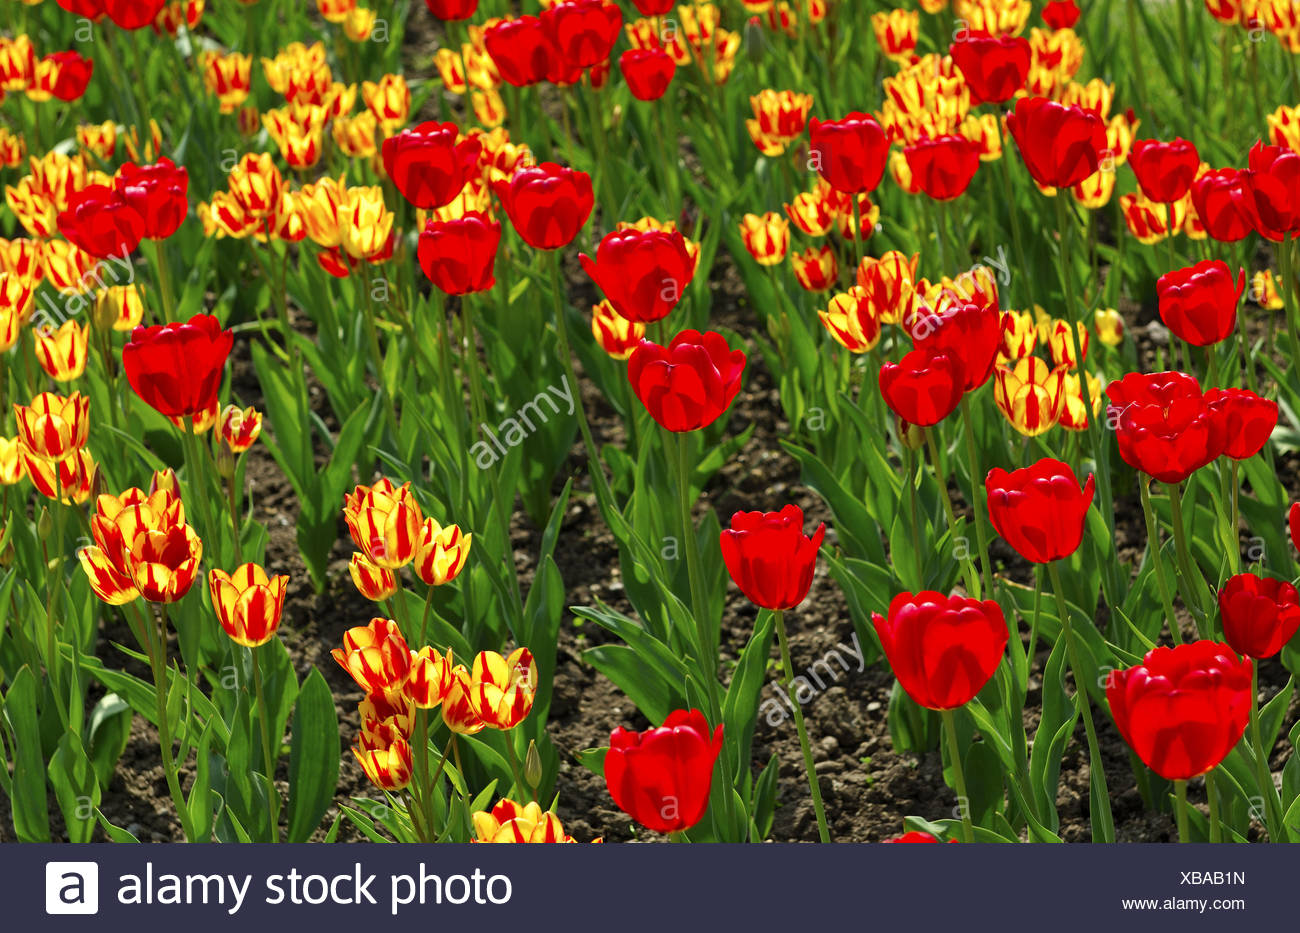 Red Gorgette und Colour Spectacle Tulips - Stock Image